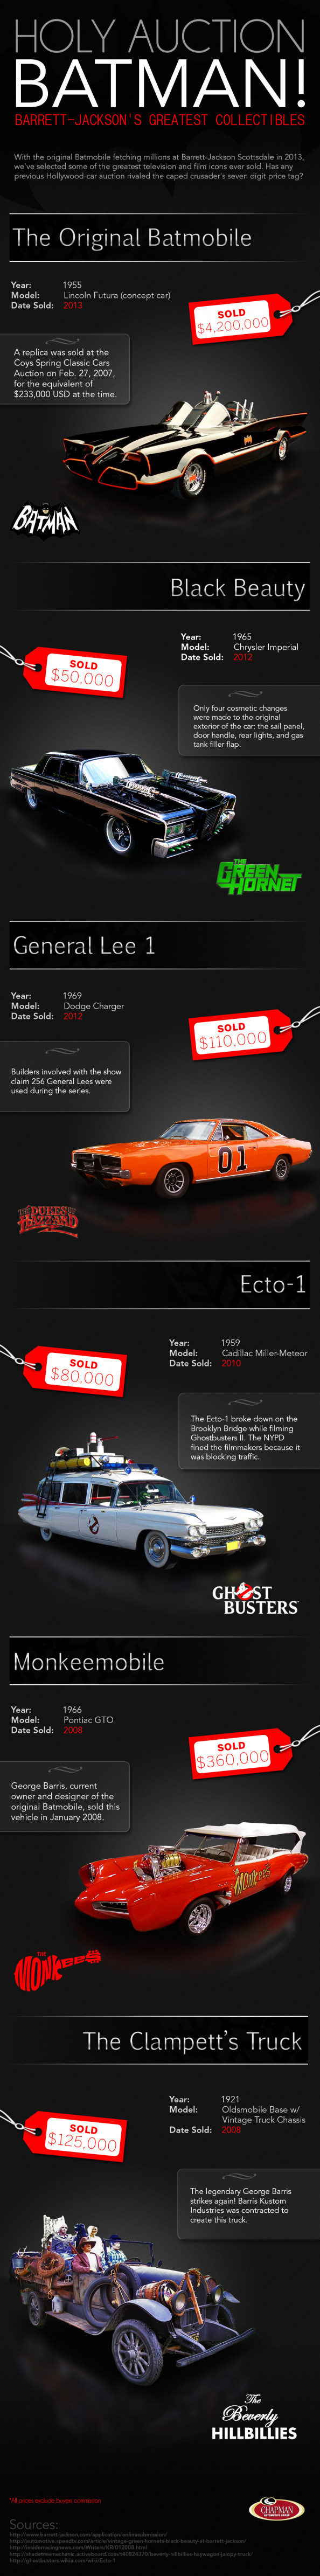 Holy Auction, Batman! Barrett-Jackson&#039;s Greatest Collectibles Infographic